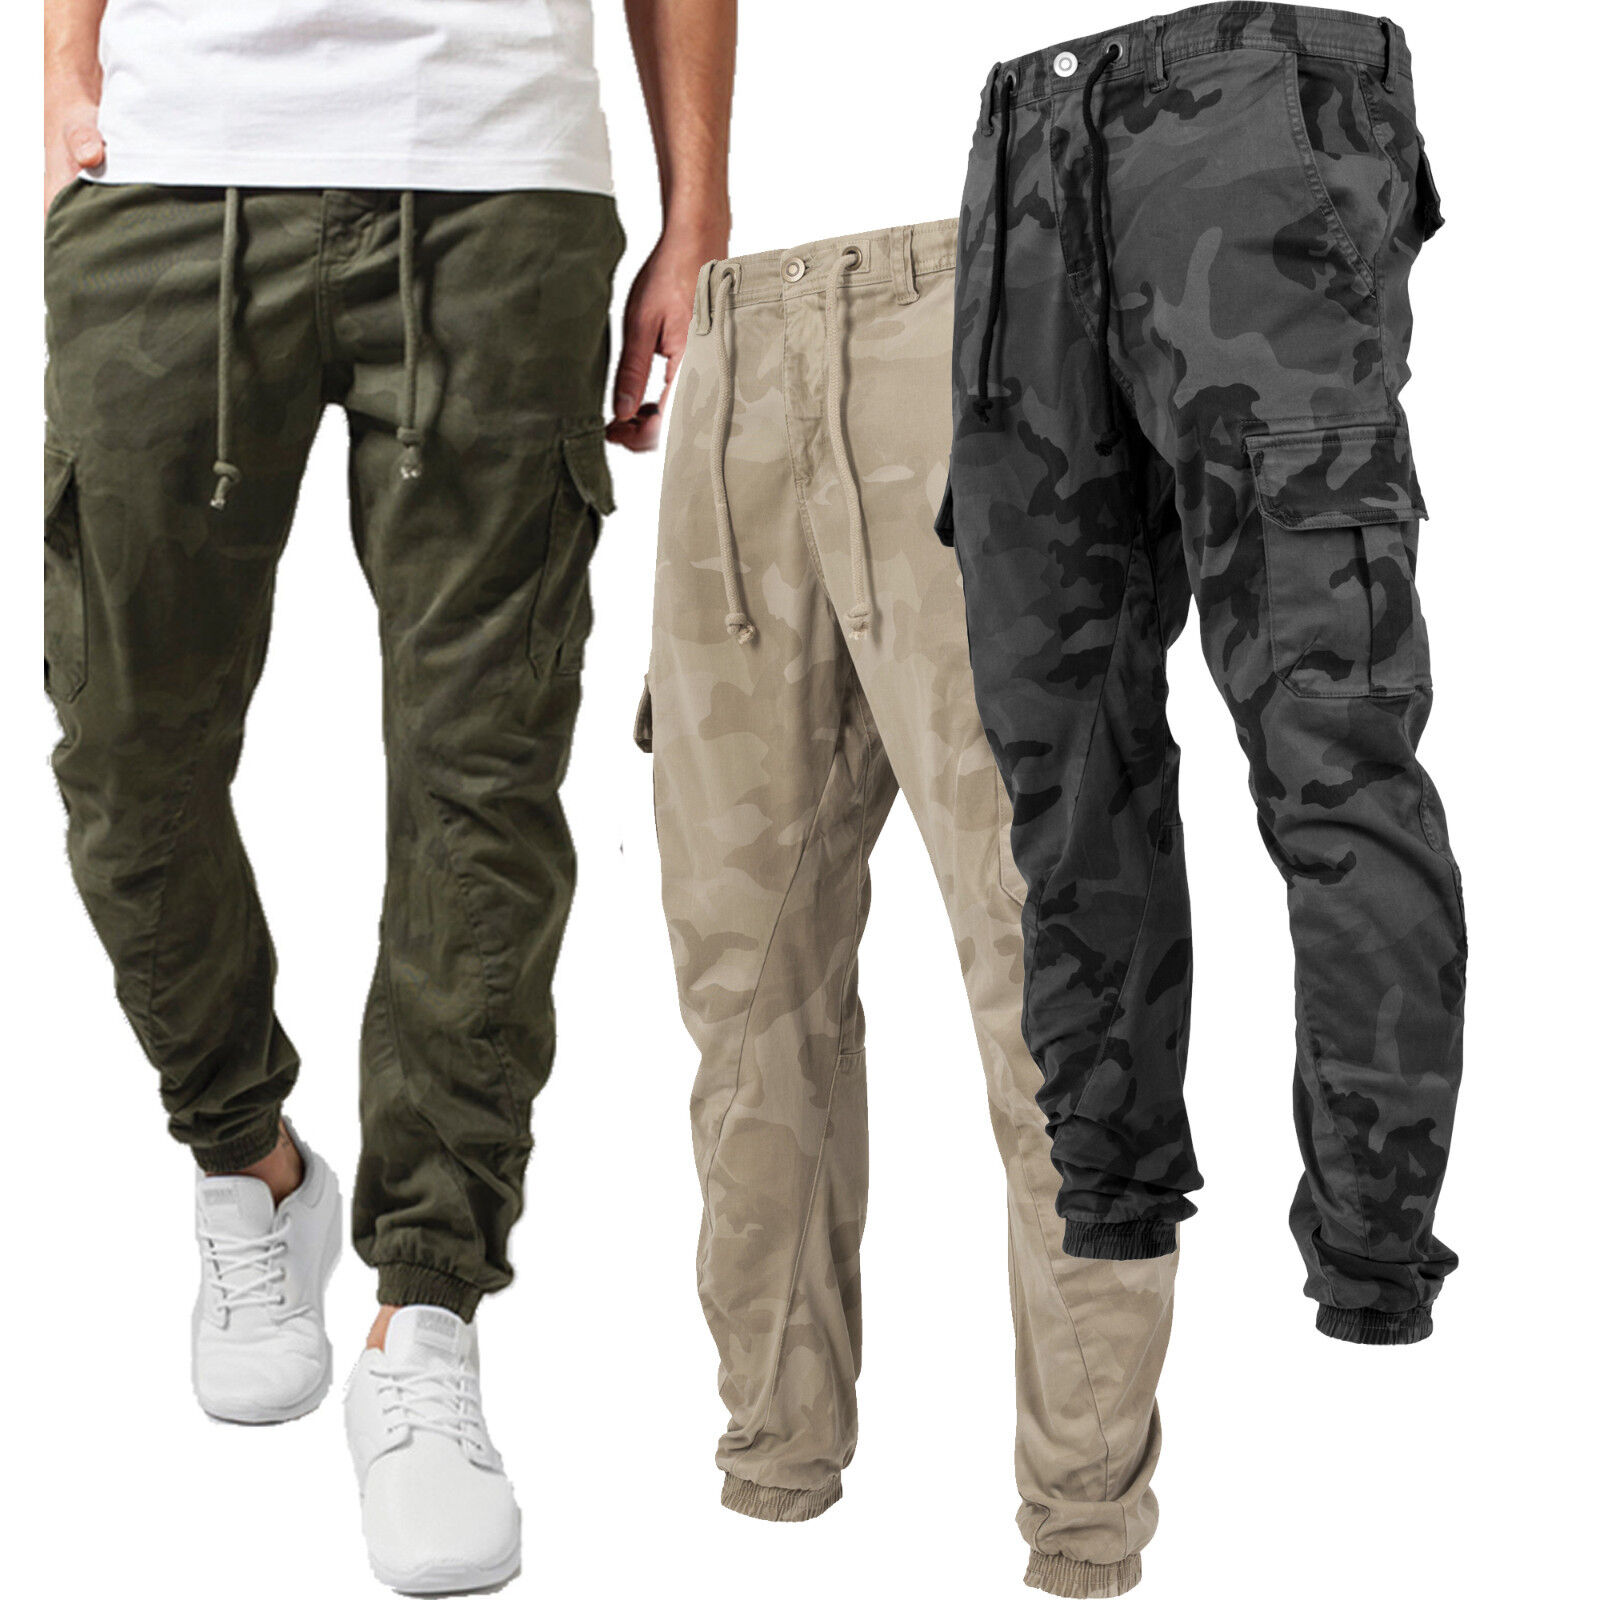 0eec9f95d8f Details about Urban Classics Men s Cargo Jeans Pants Camouflage Tarn Army  Bundesweh